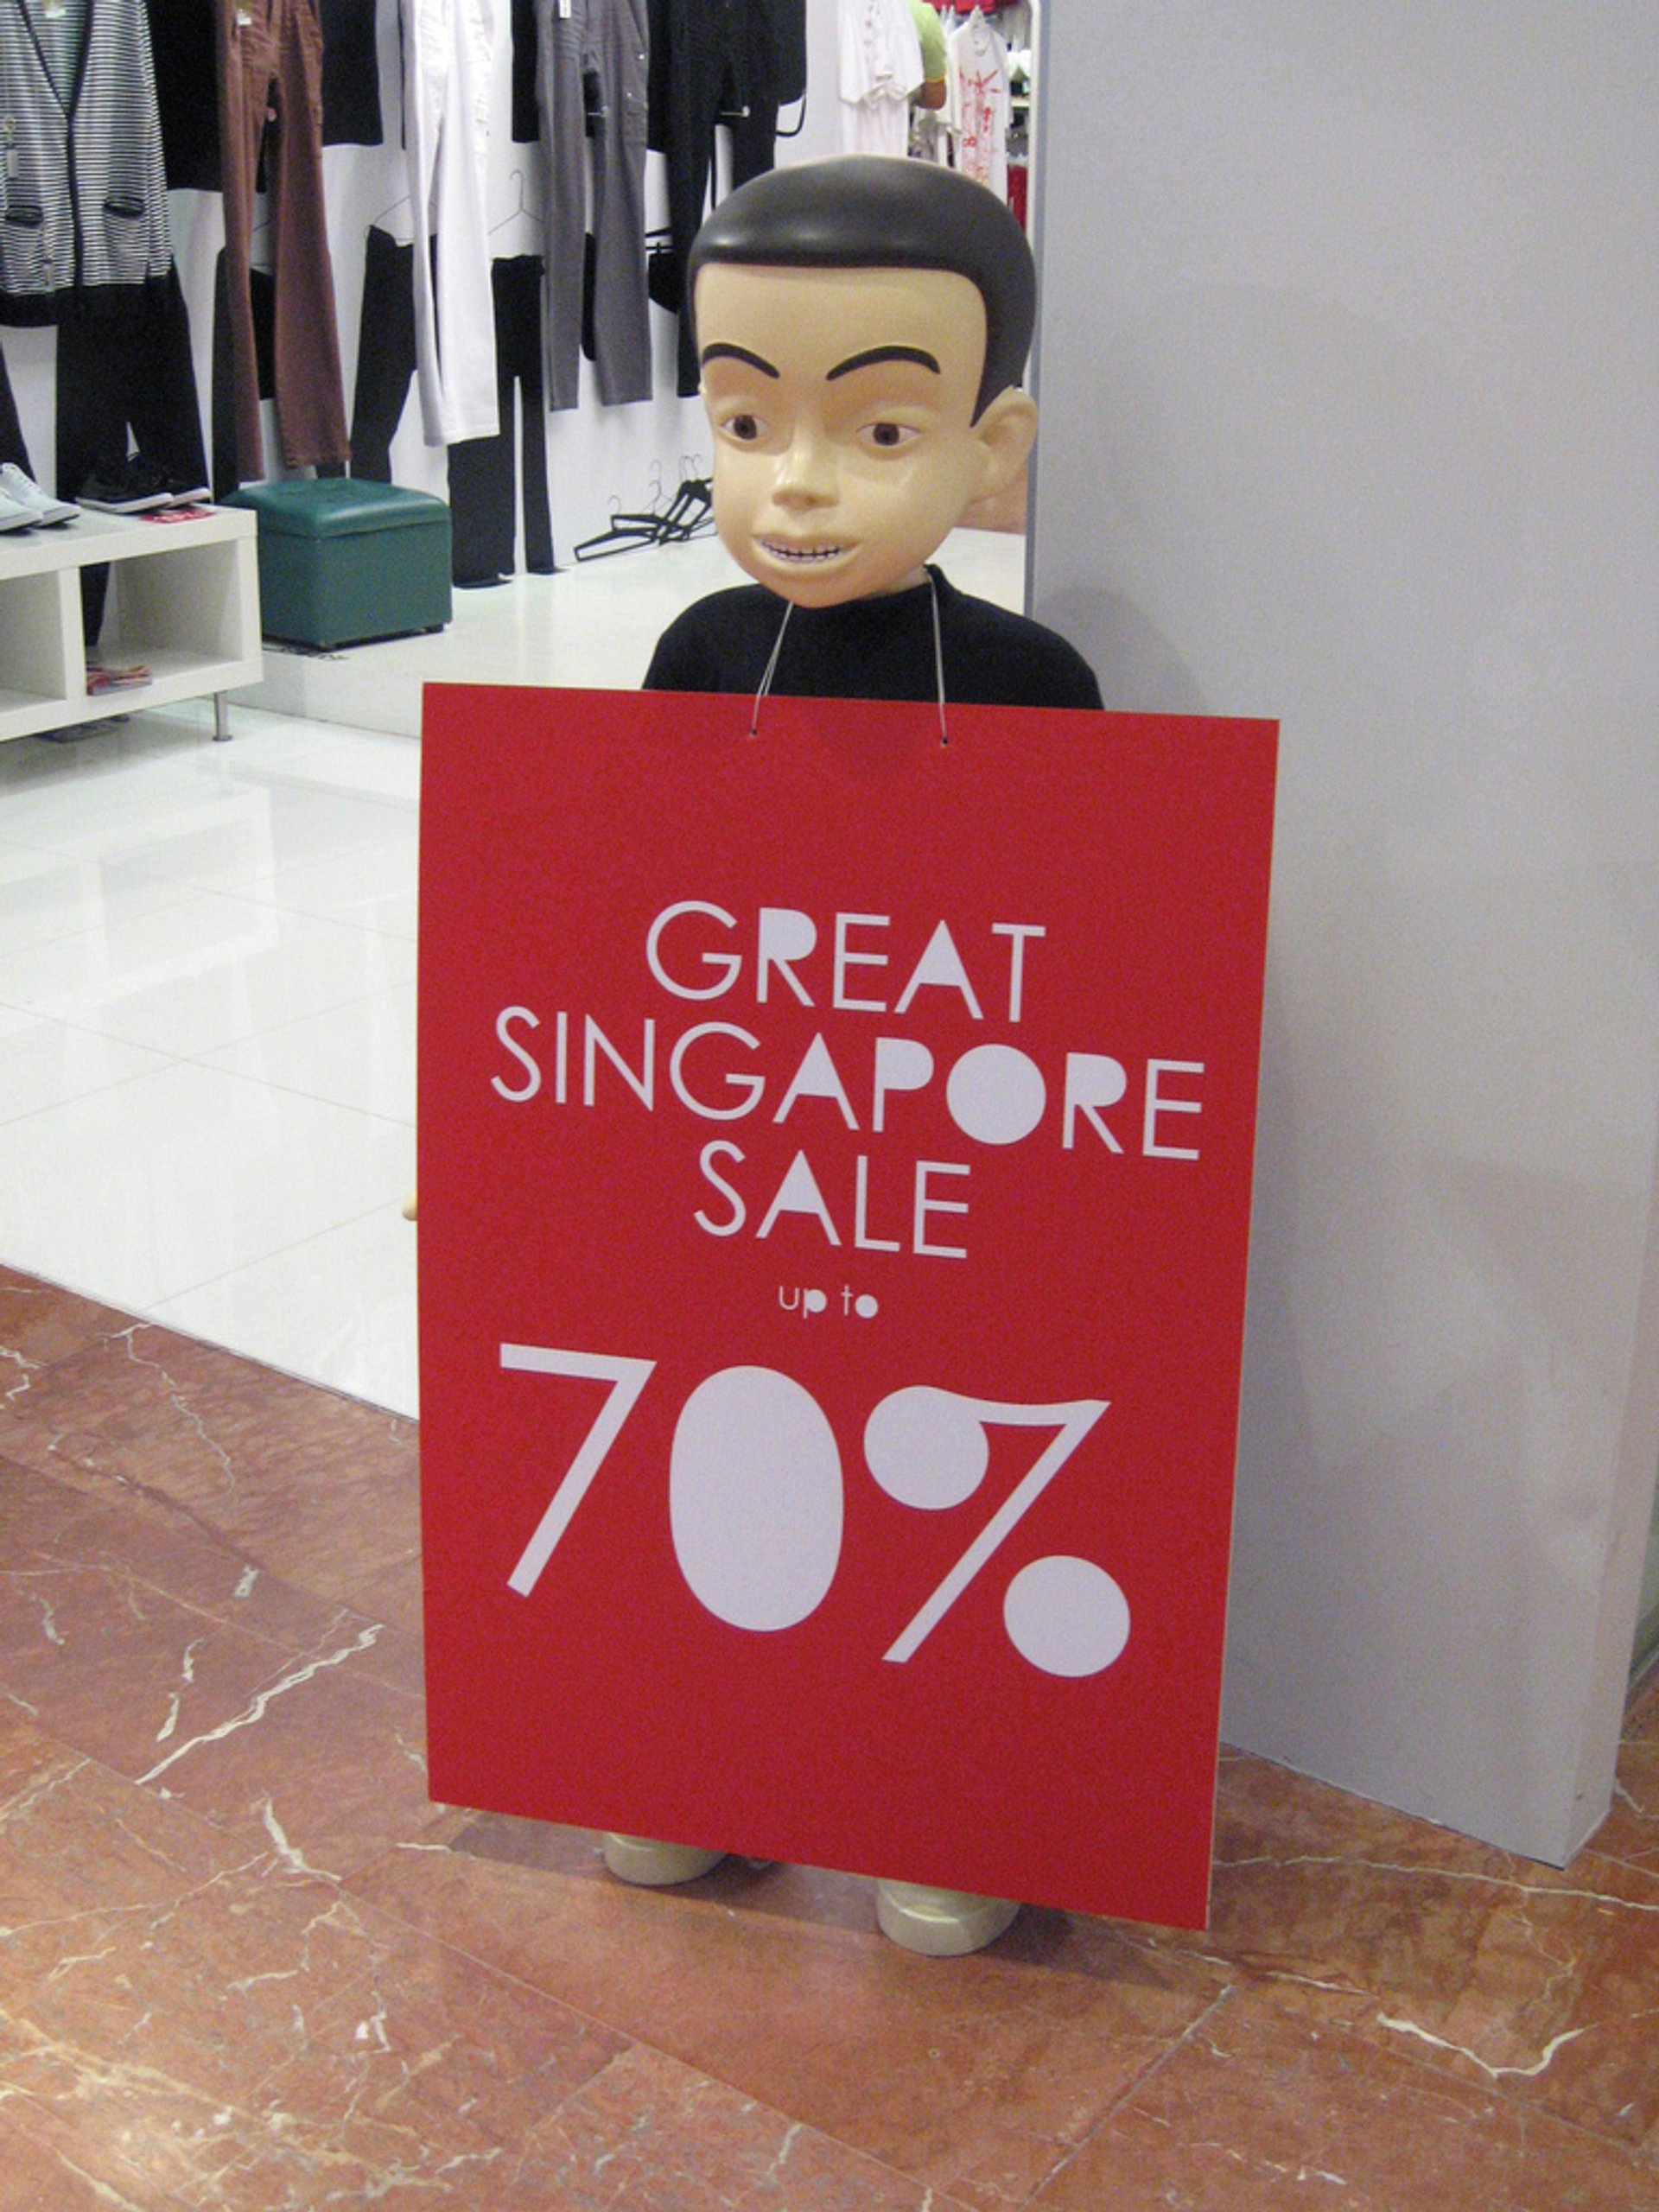 The Great Singapore Sale in Singapore 2020 - Best Time